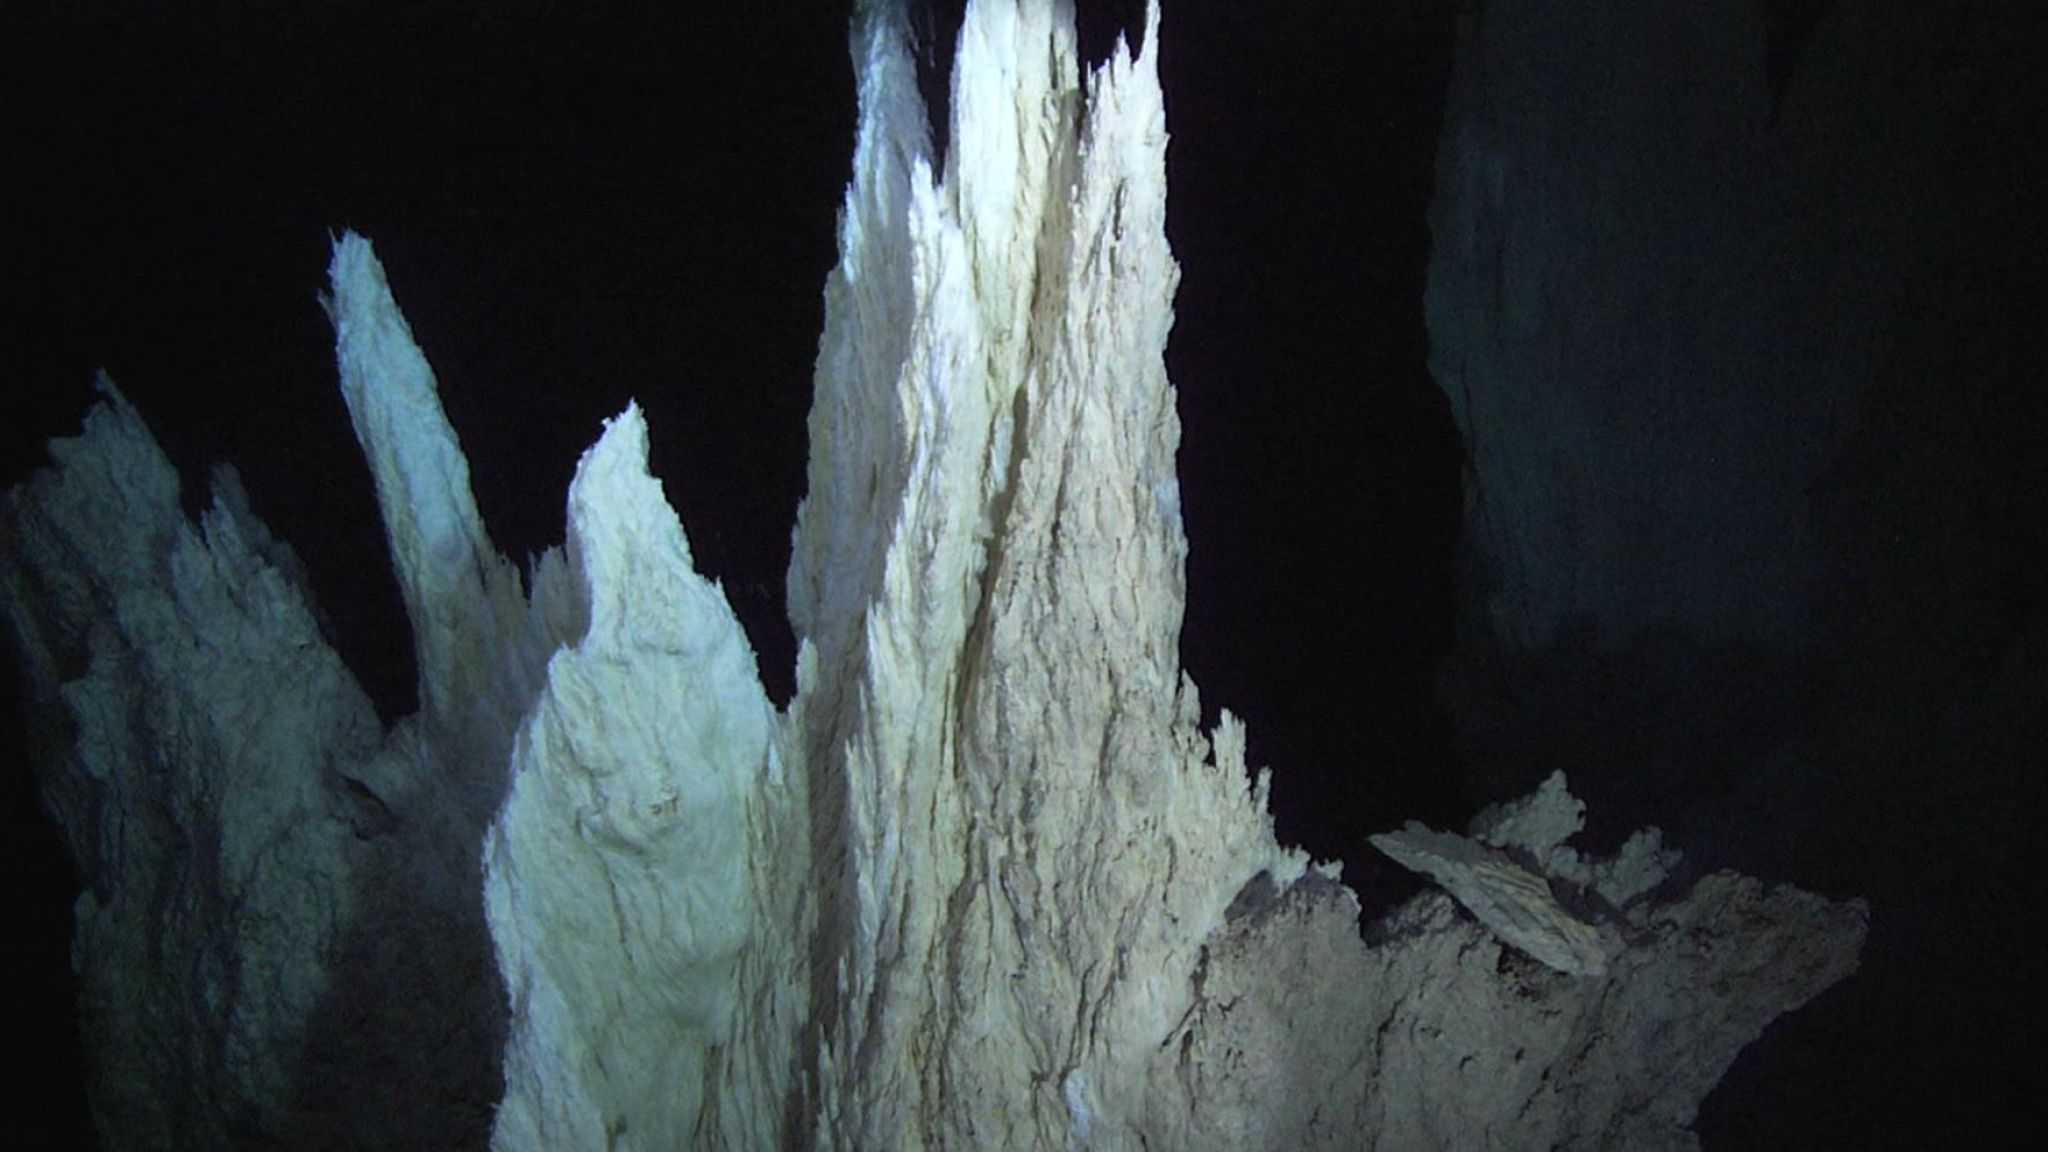 Deep sea mining could destroy underwater Lost City, scientists warn